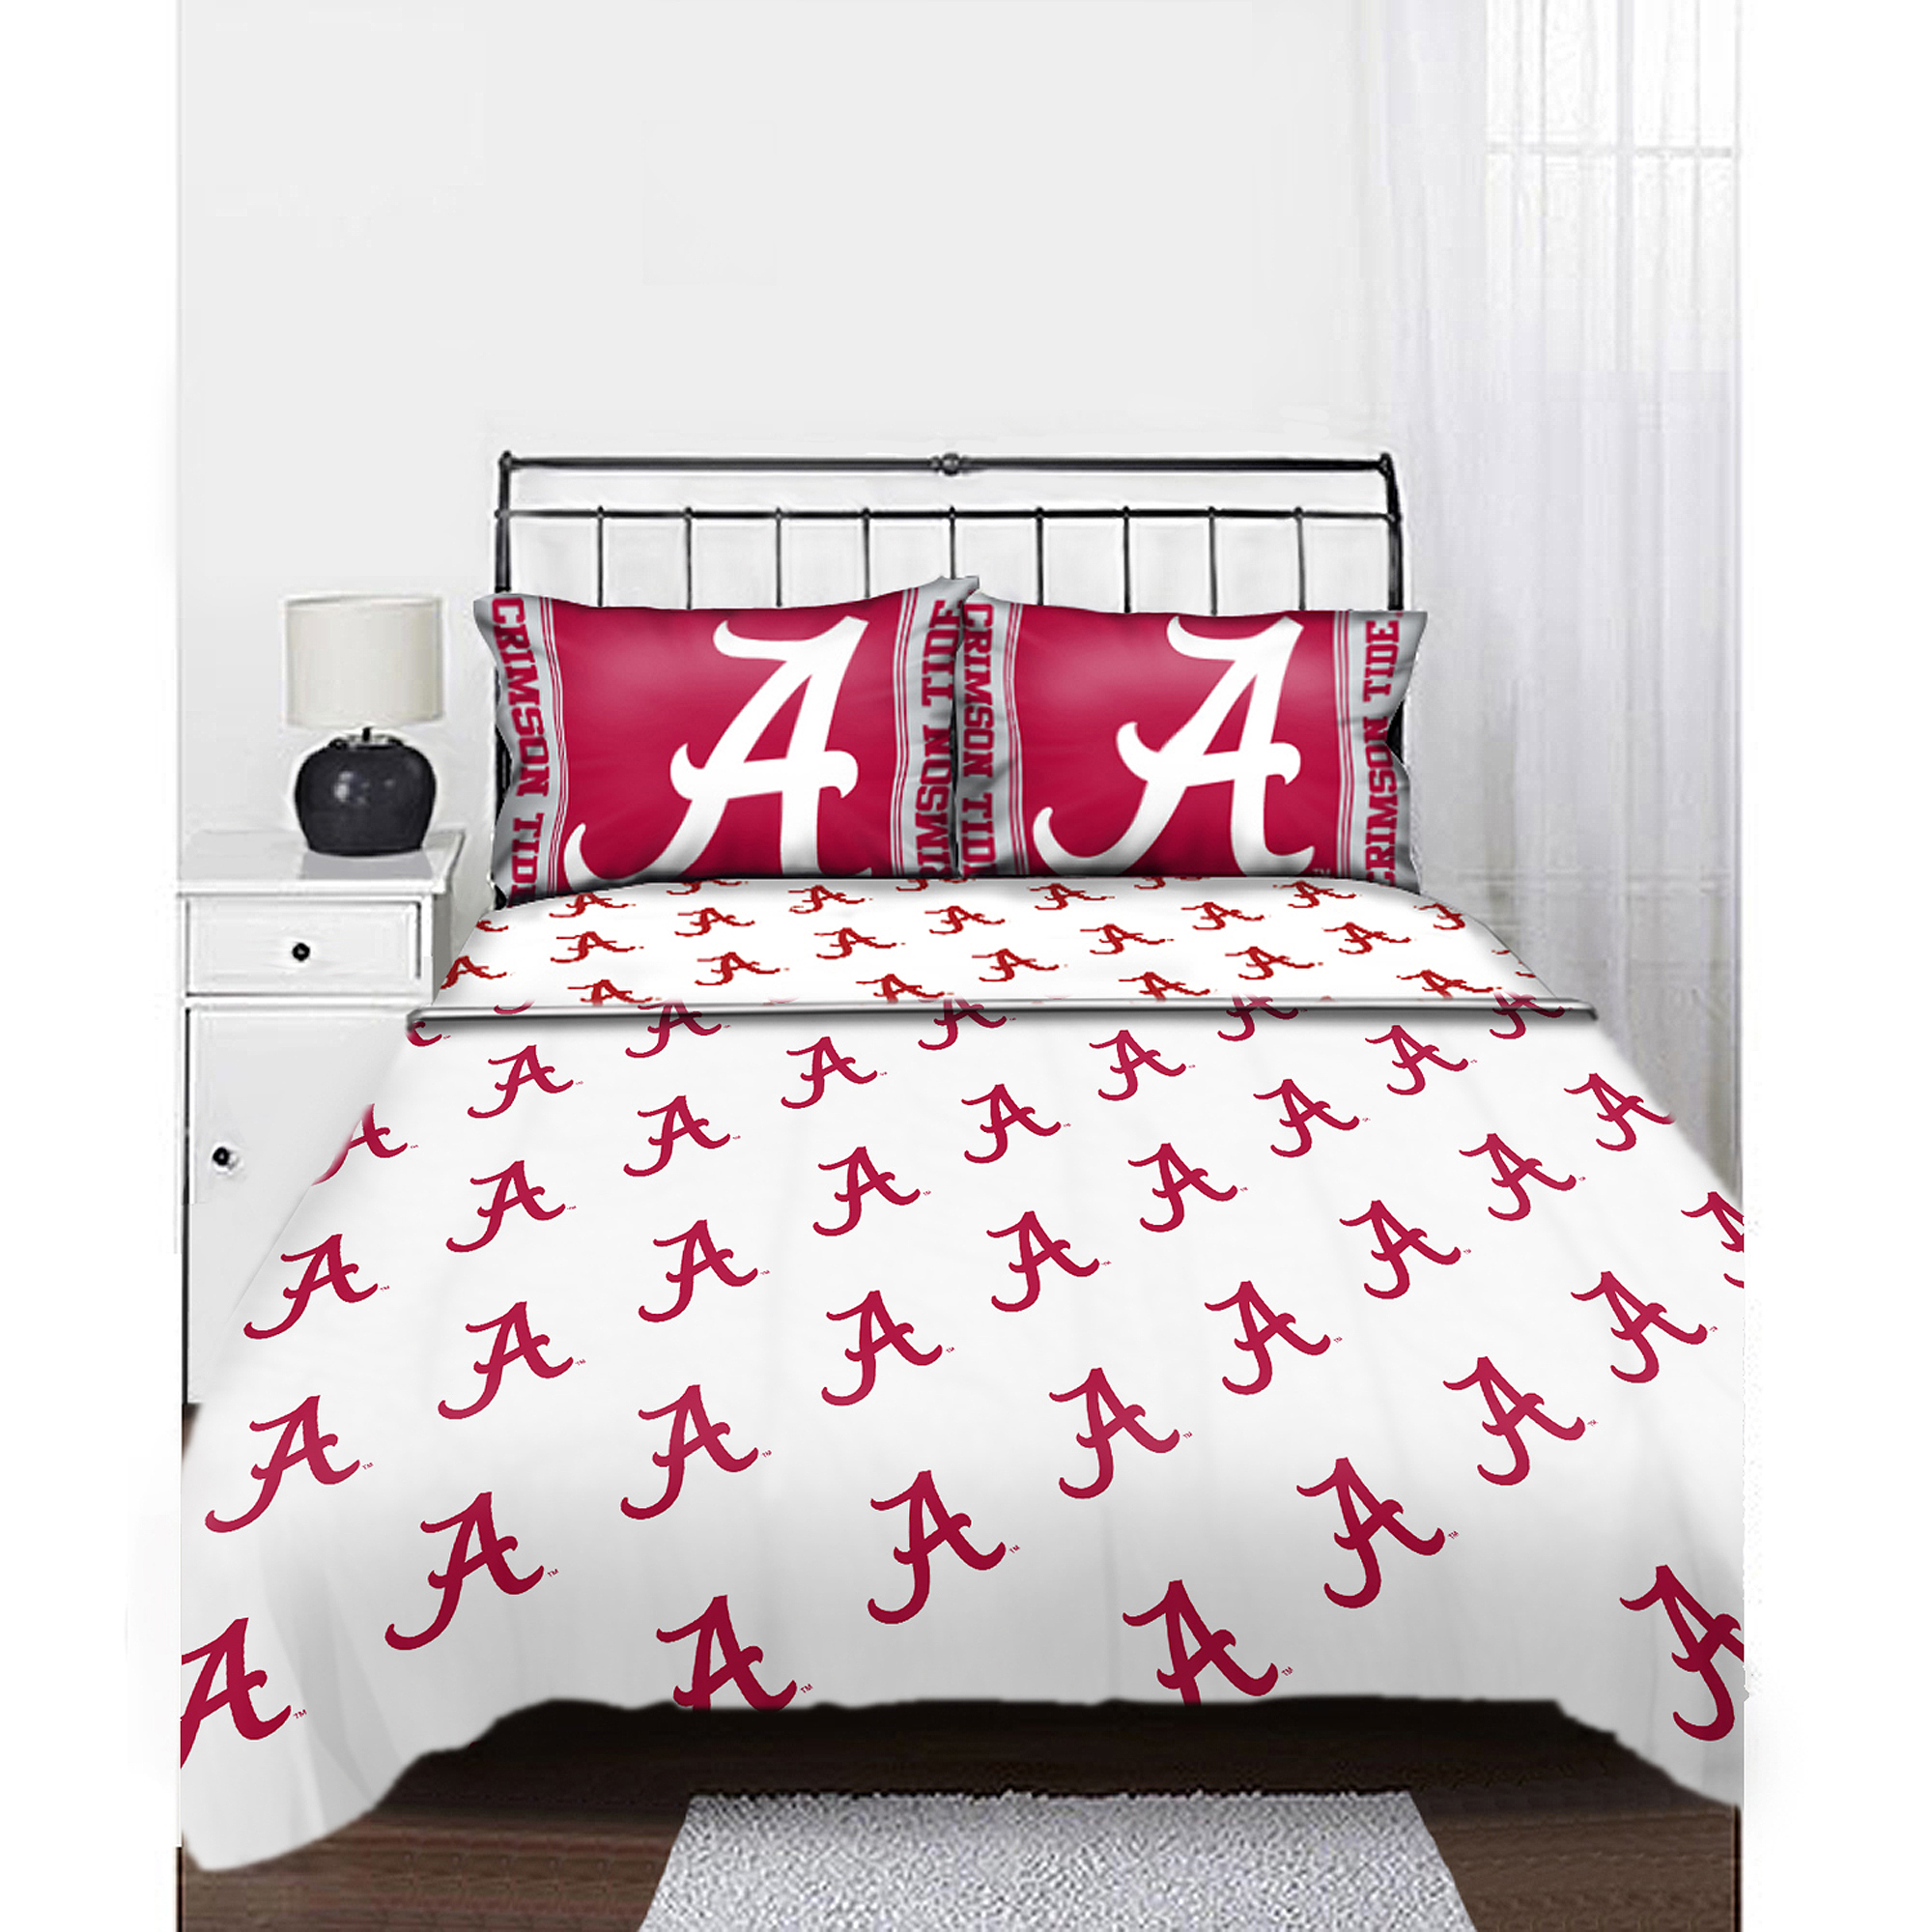 NCAA Alabama Crimson Tide Sheet Set Anthem Sheets Full Bed